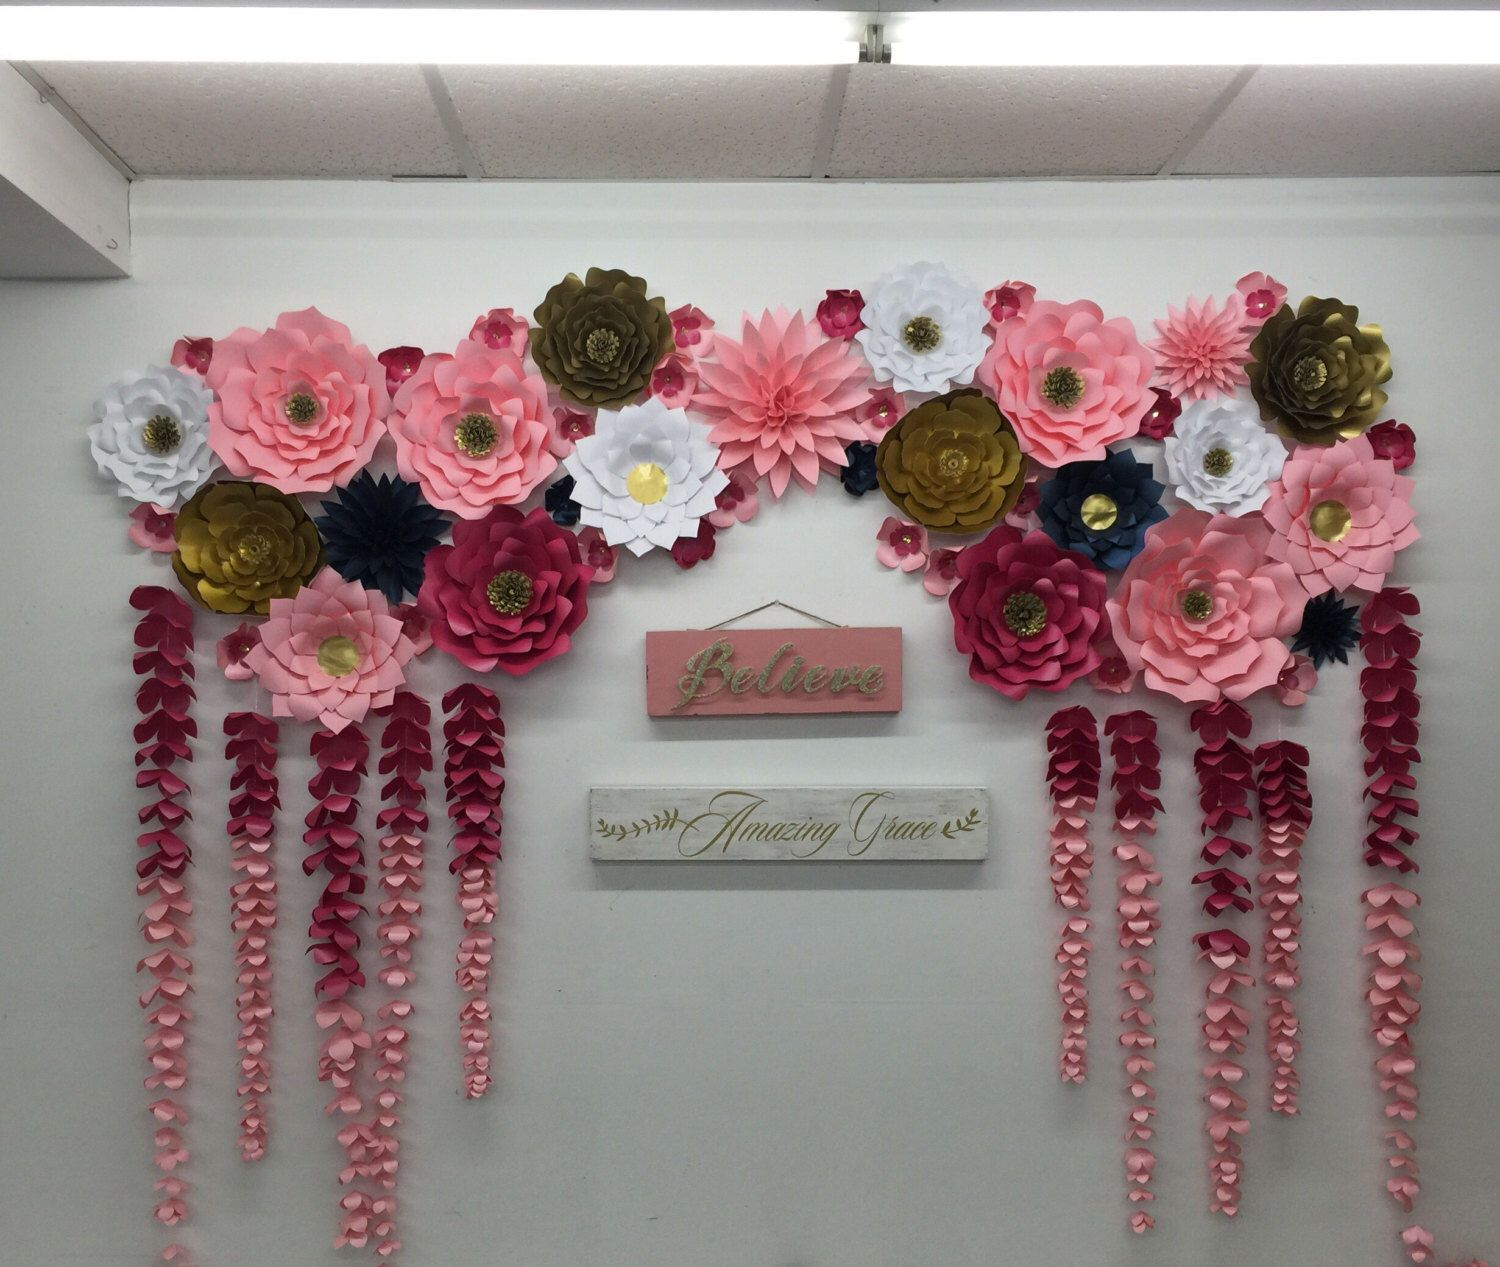 Large paper flowers backdrop wedding arch photo booth flower wall large paper flowers backdrop wedding arch photo booth flower wall birthday pary nursery art custom bridal shower princess ready to ship mightylinksfo